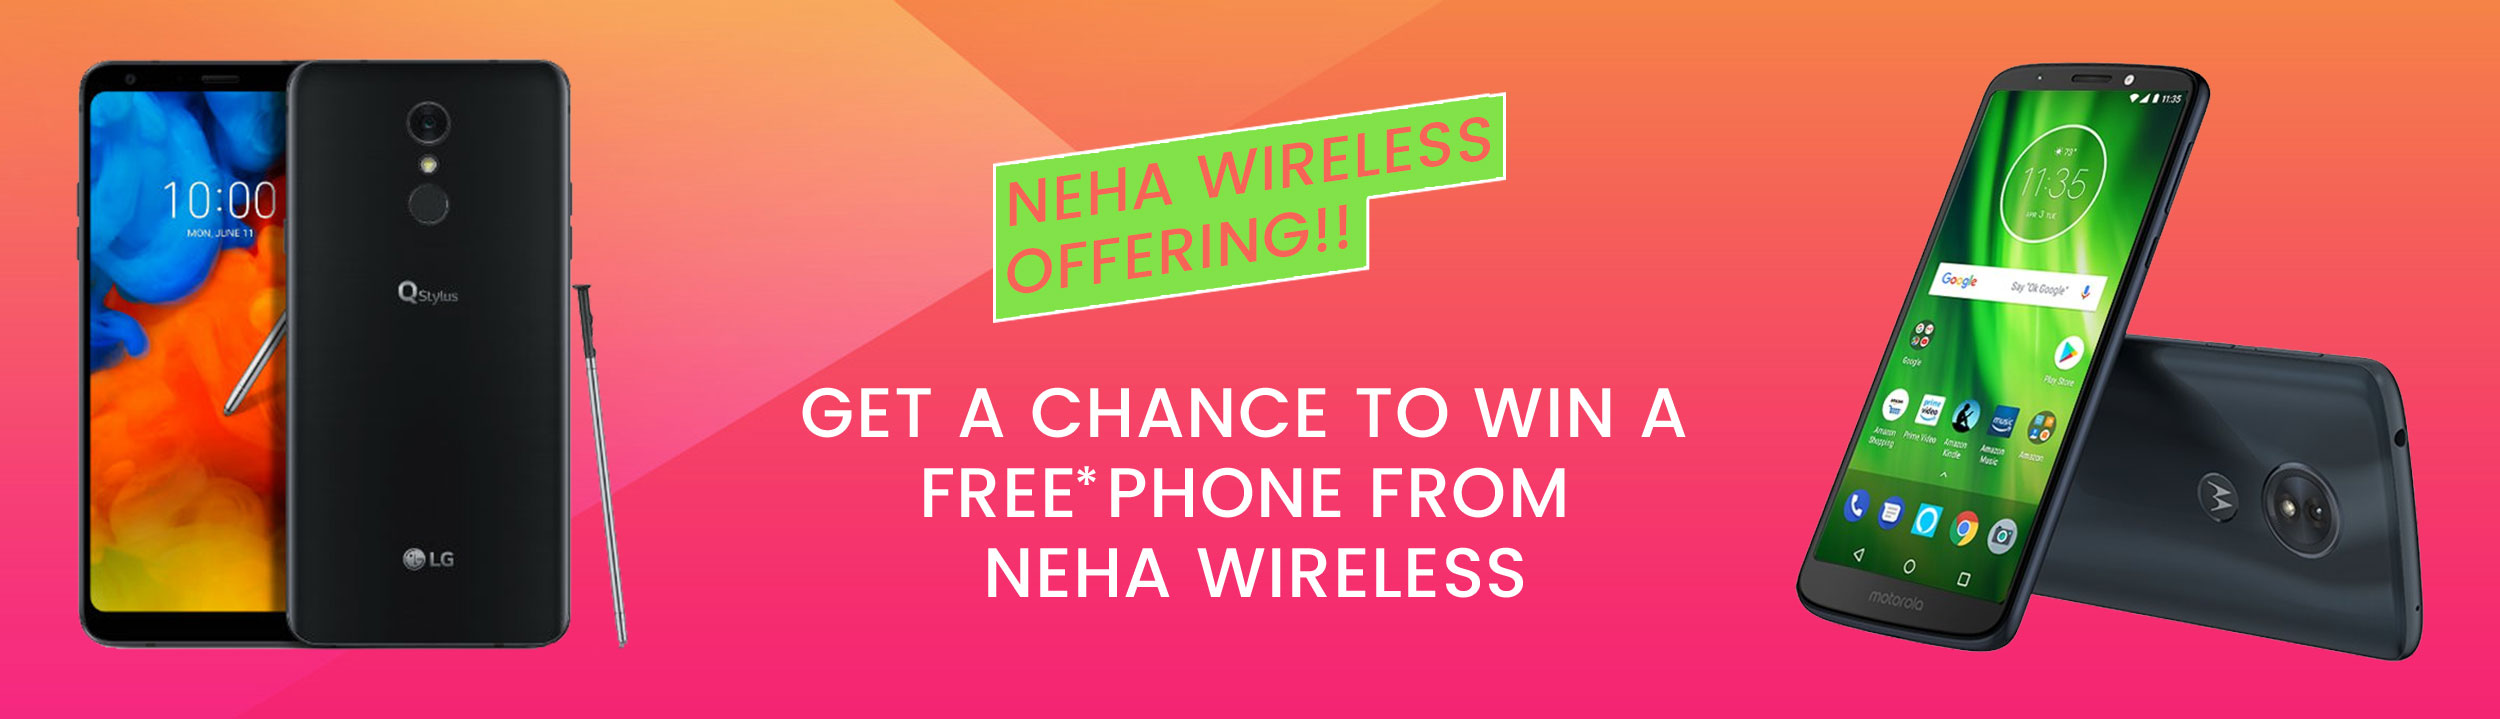 nehawireless